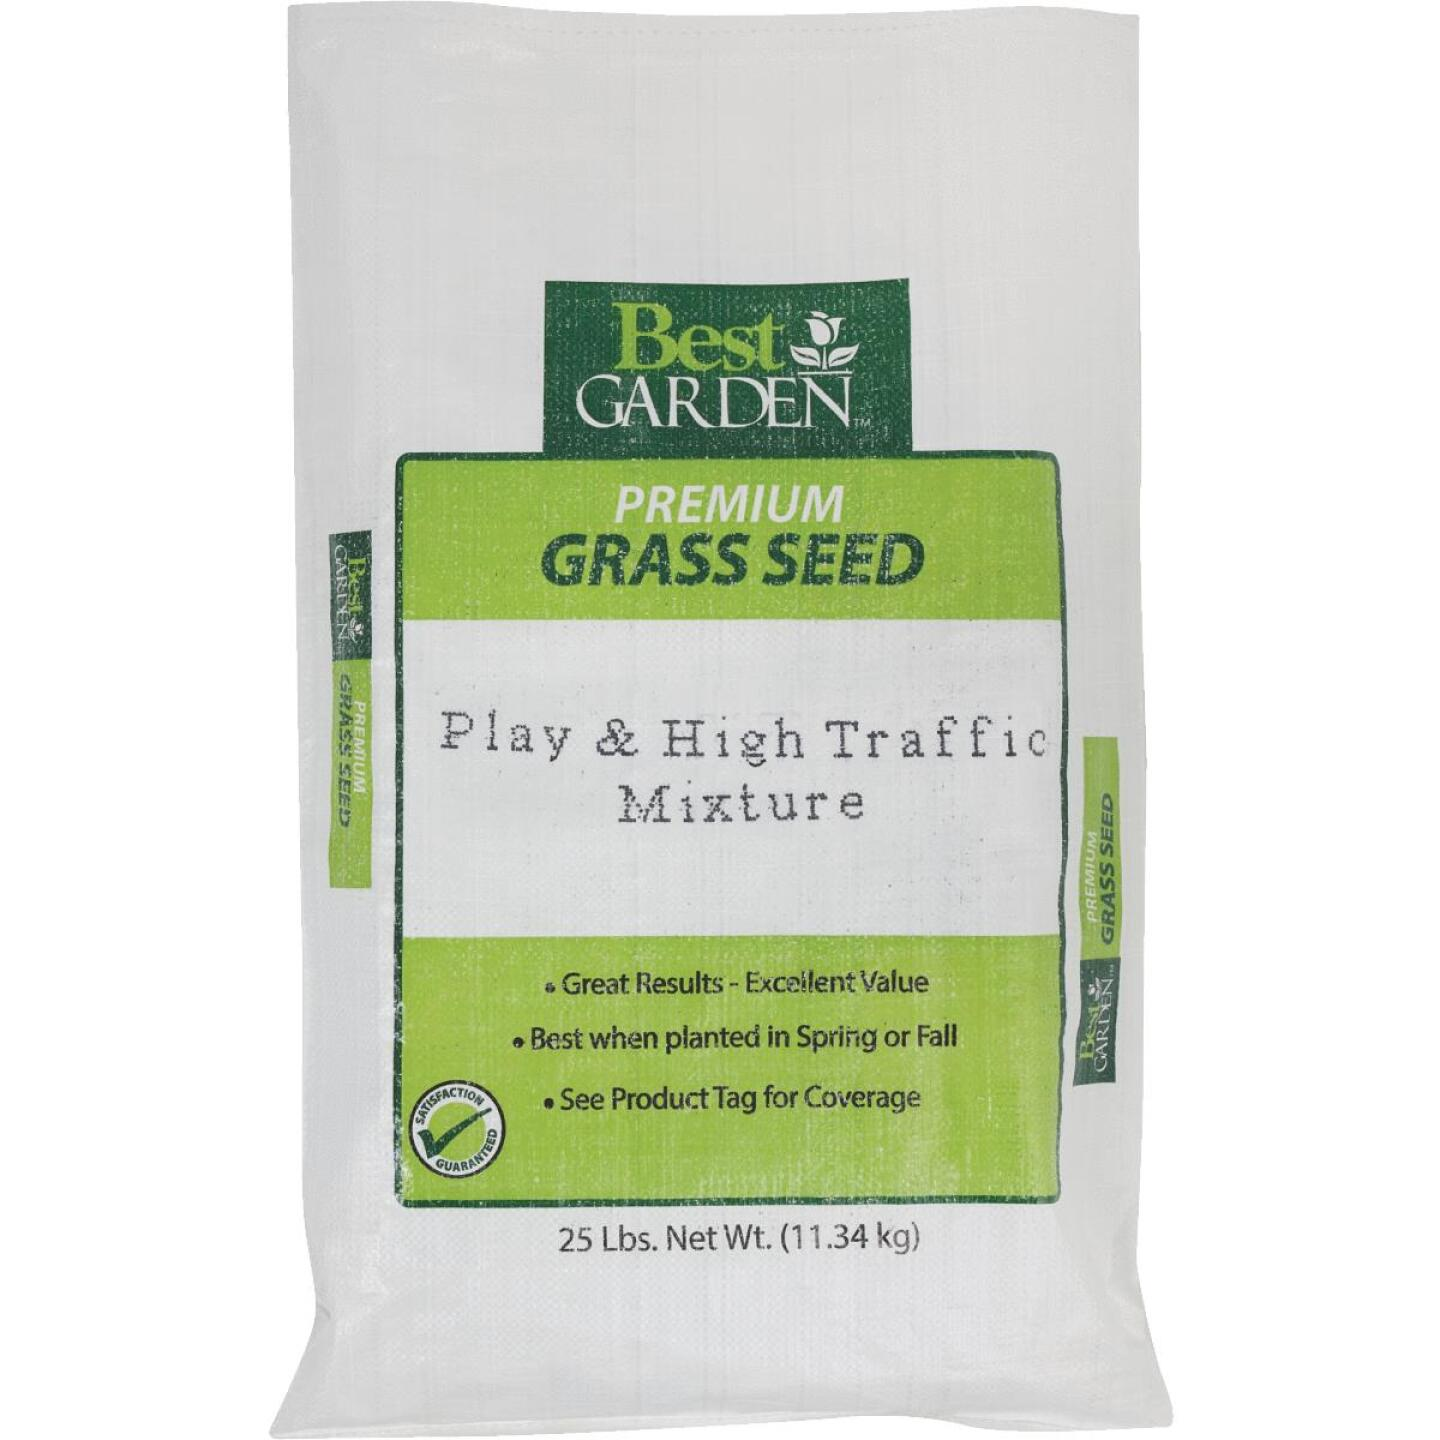 Best Garden 25 Lb. 7500 Sq. Ft. Coverage High Traffic Grass Seed Image 1